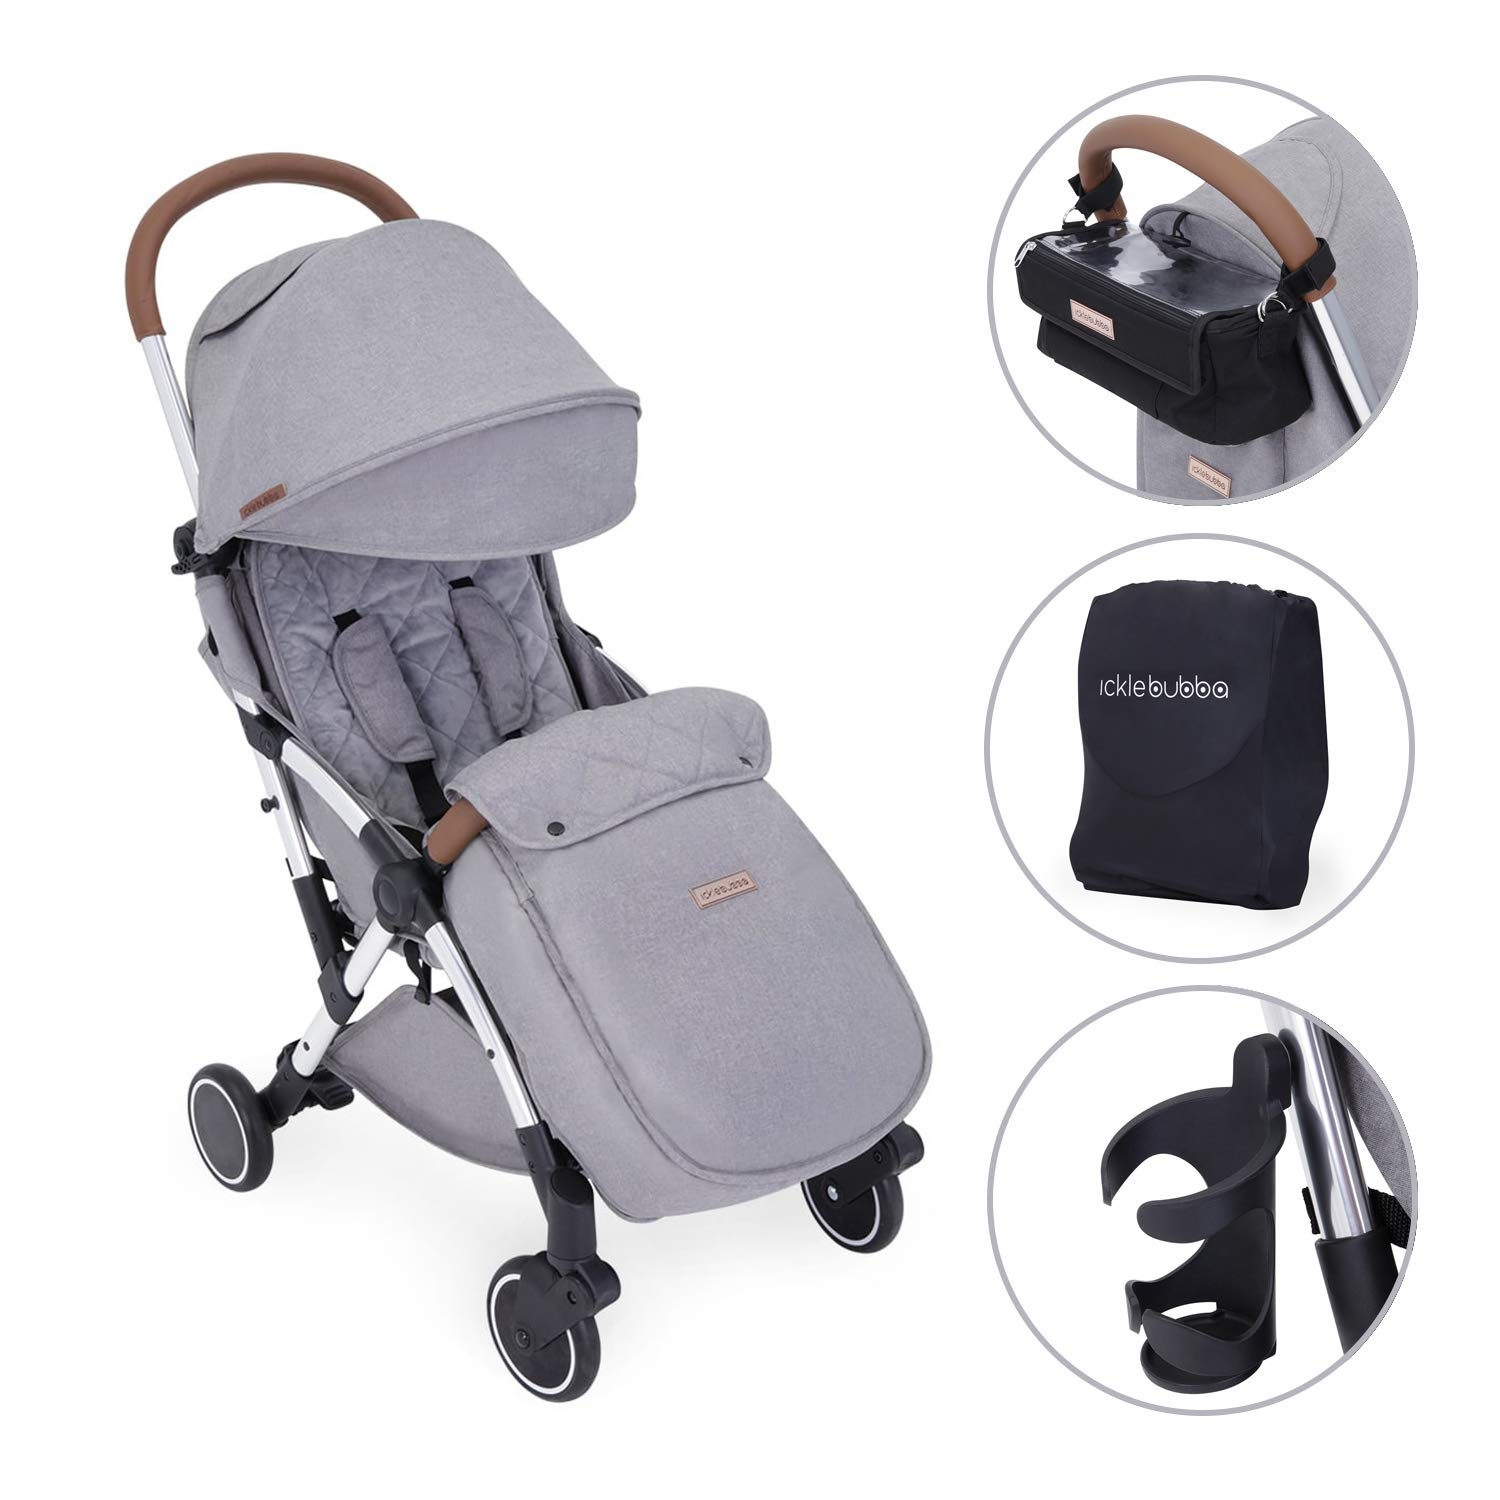 Denim Blue// Silver Folds Slim for Ultra Compact Storage Lightweight and Portable Stroller Pushchair Ickle Bubba Baby Strollers UPF 50+ Extendable Hood and Rain Cover Globe